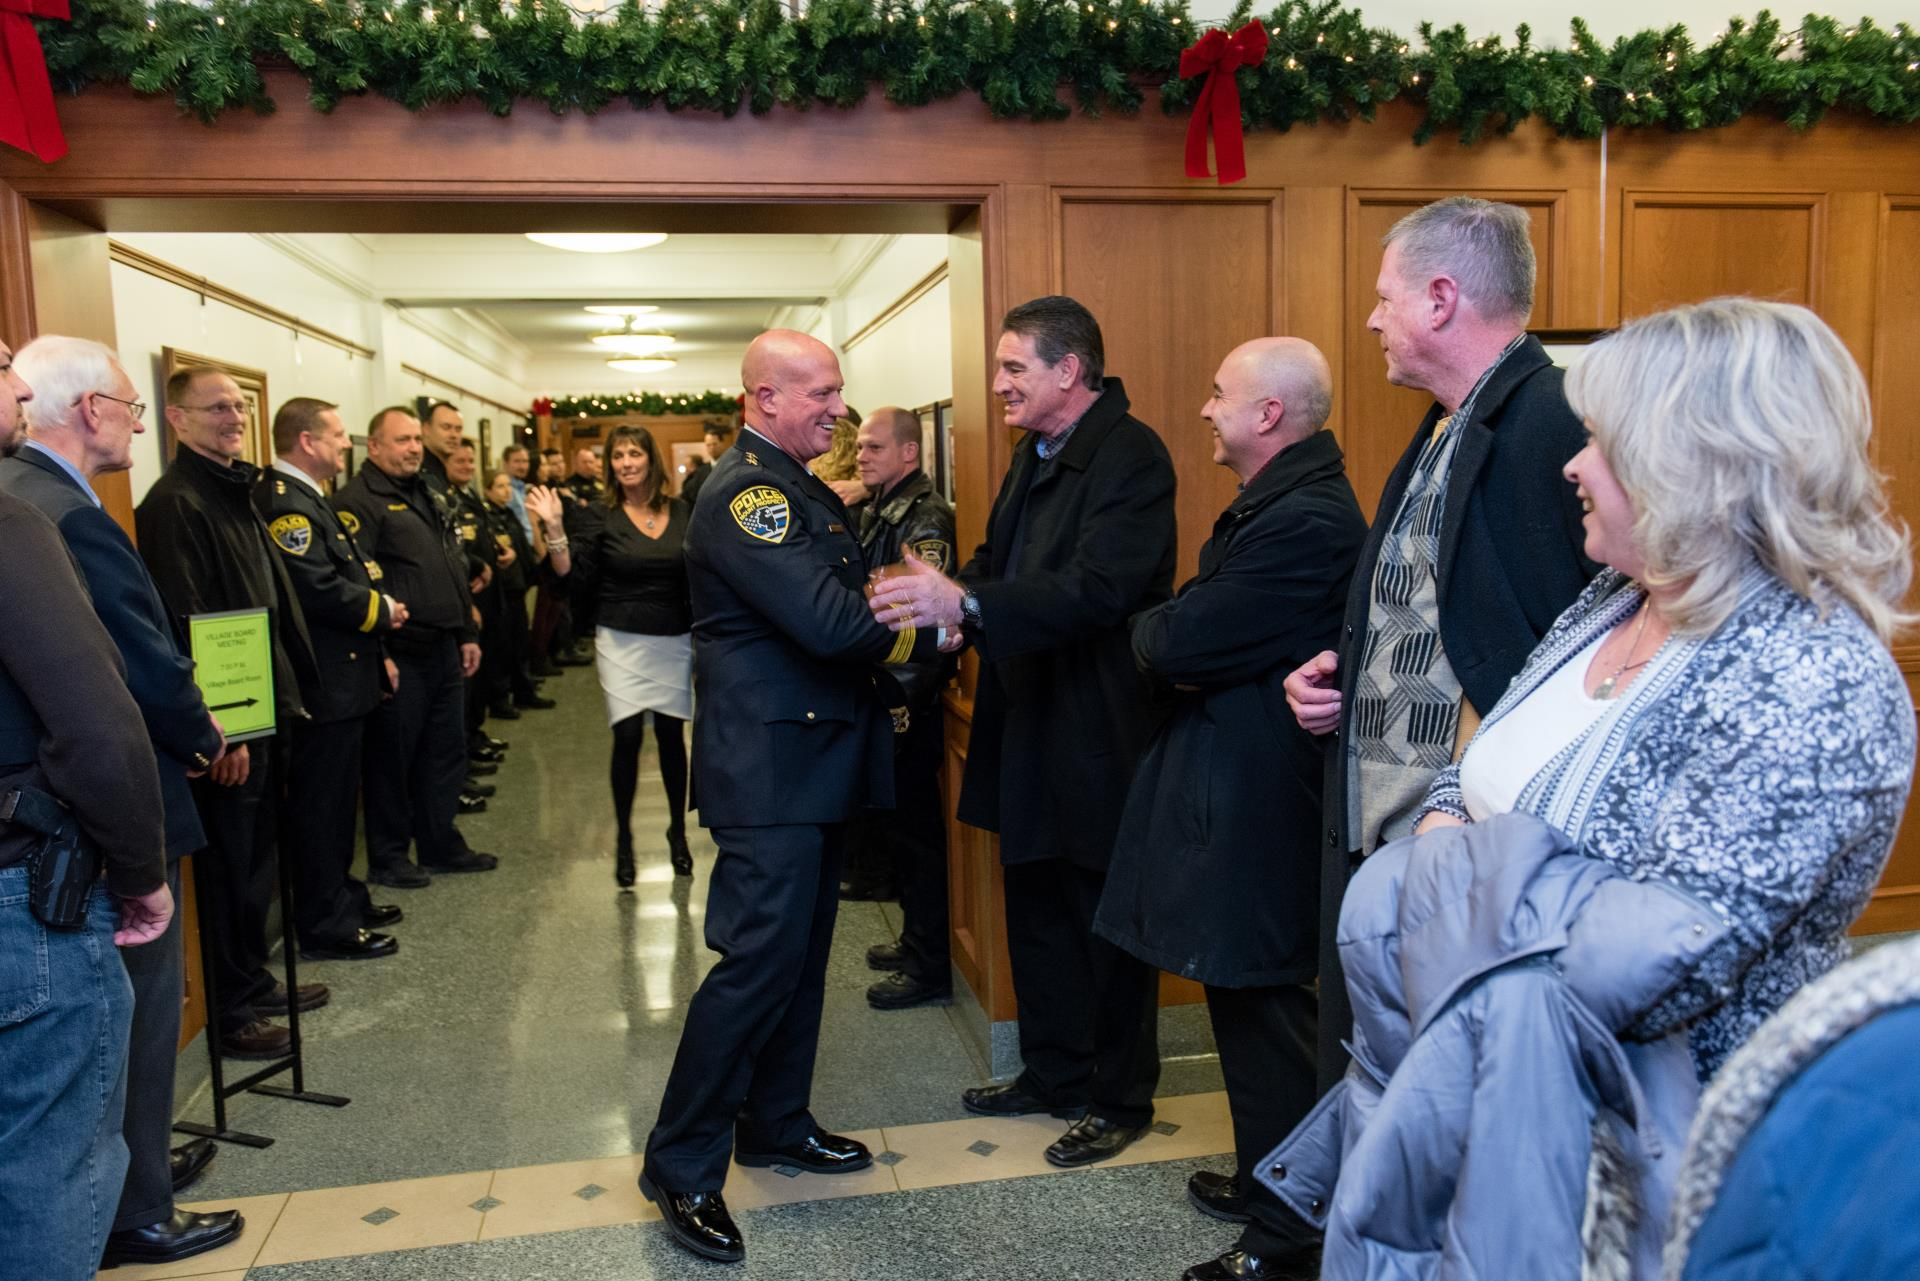 Chief Koziol Swearing-In Ceremony Final-4284